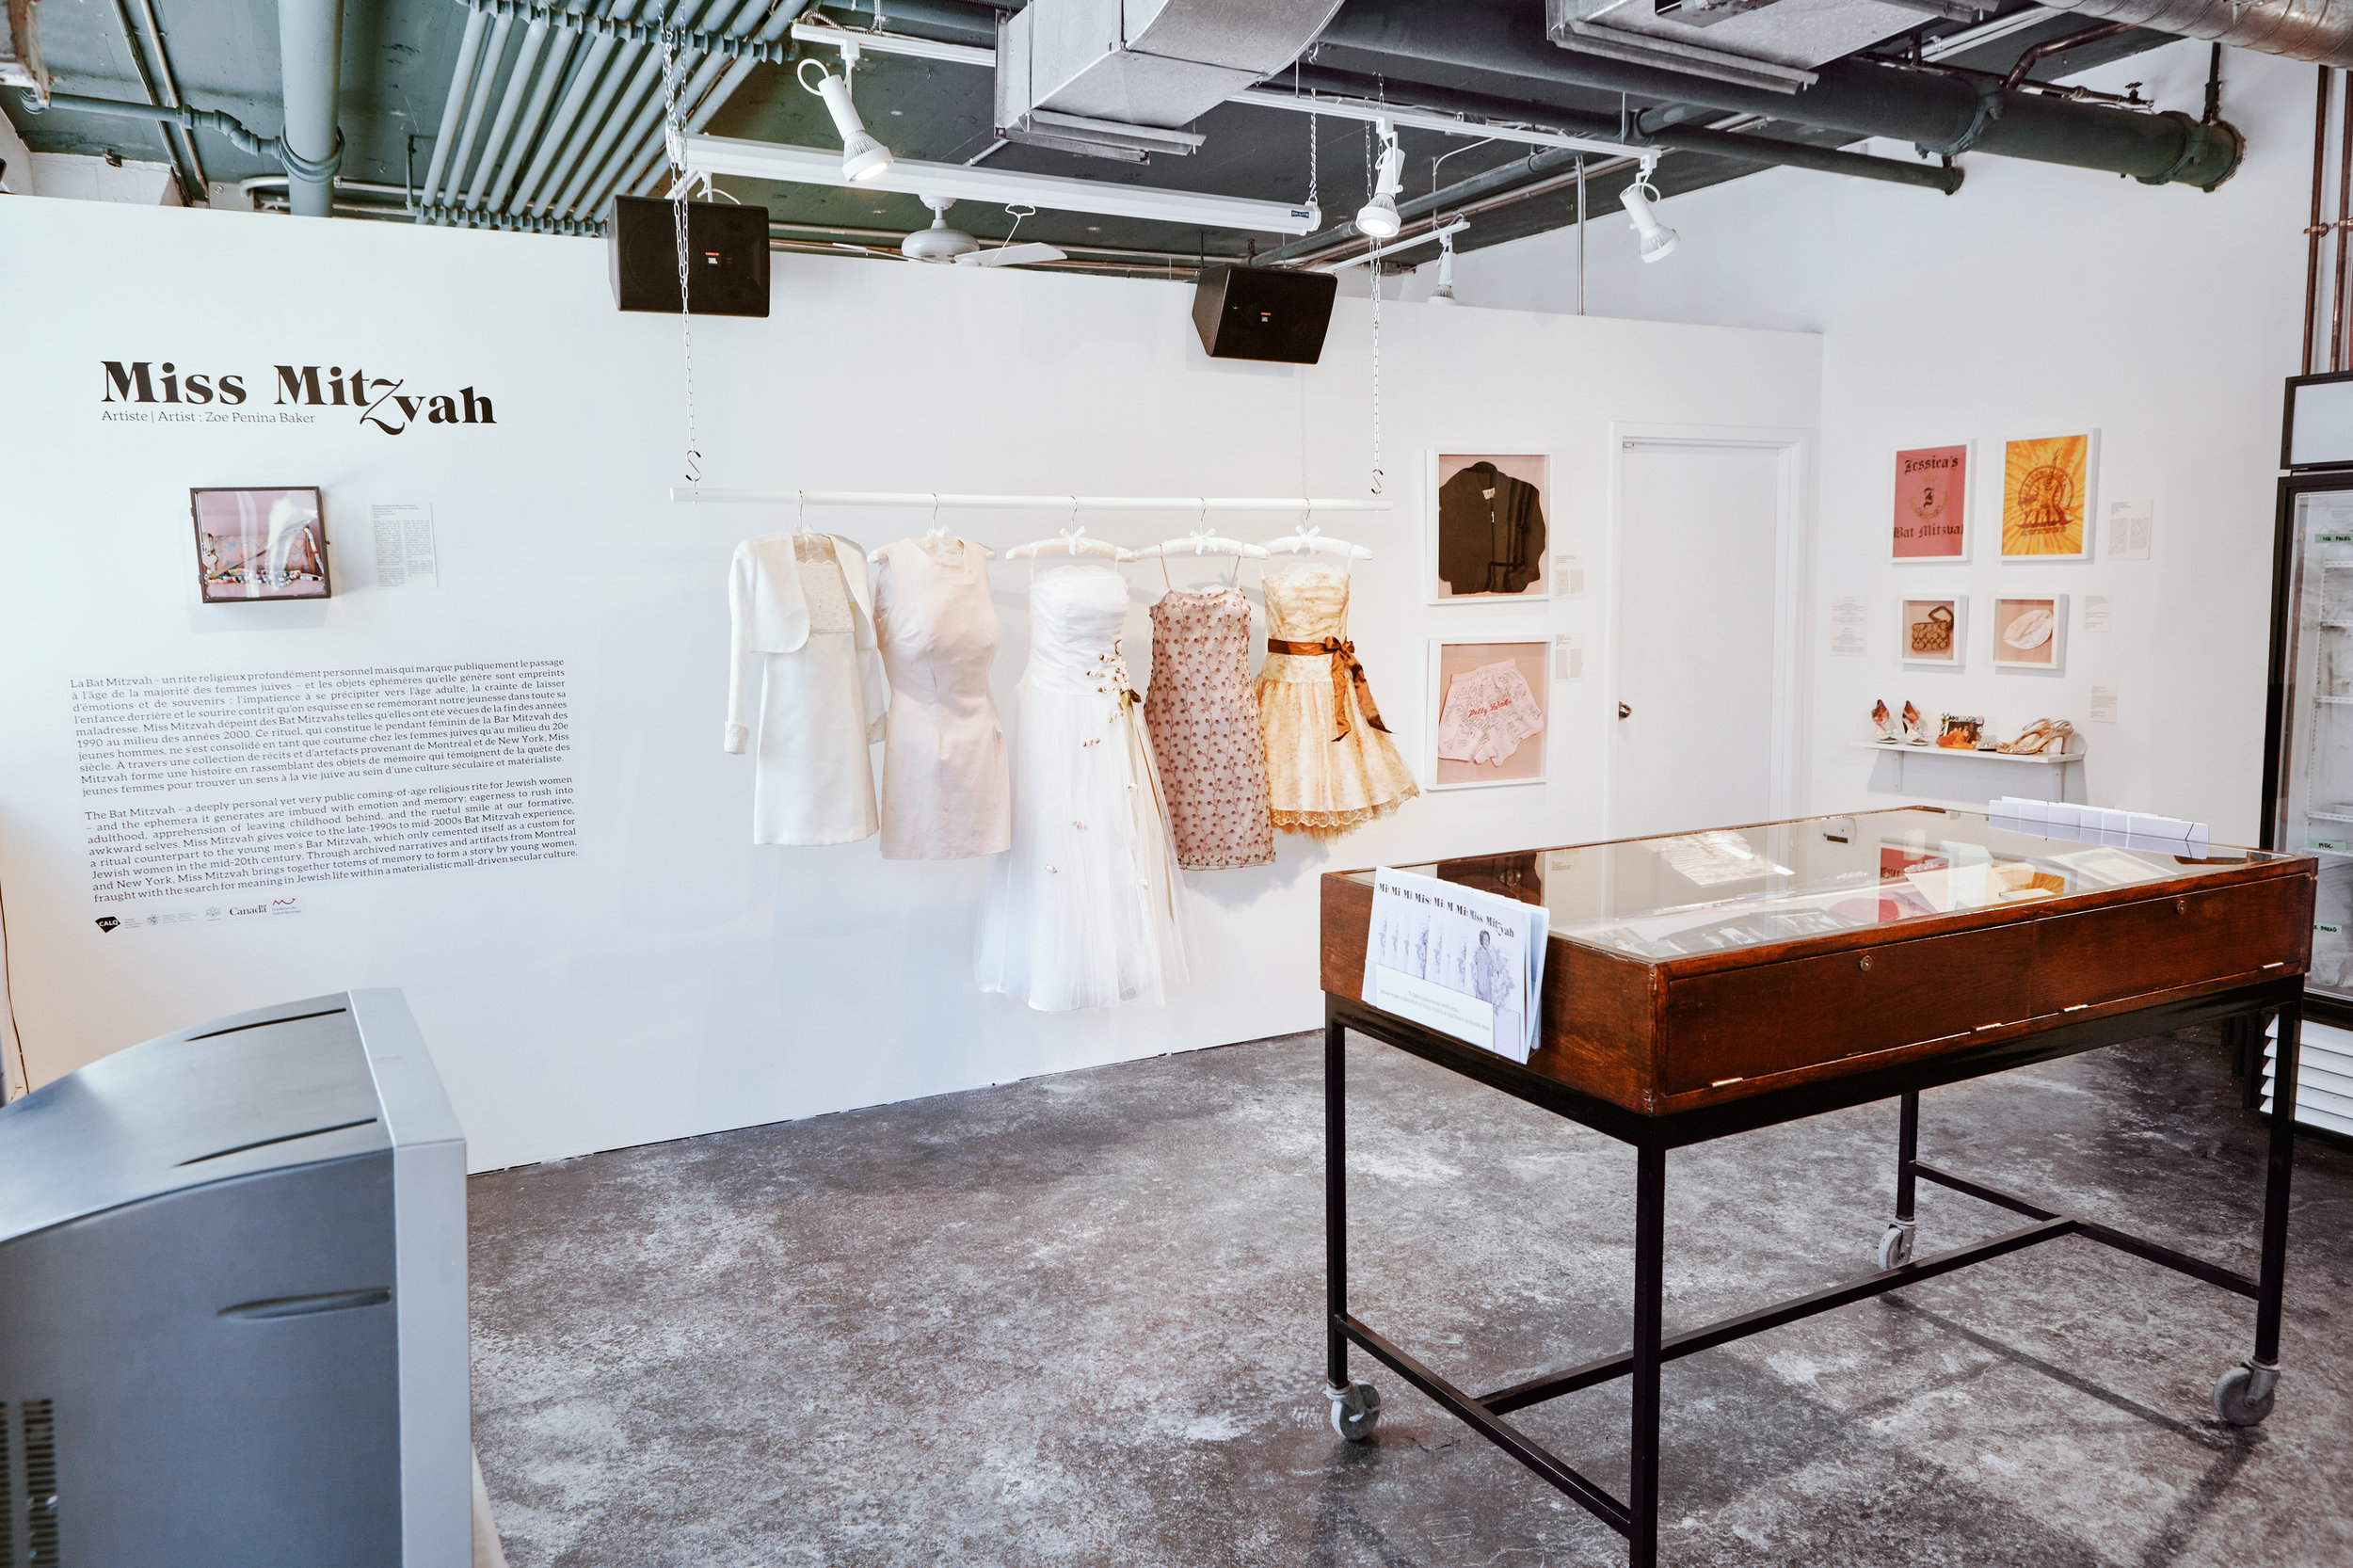 Installation view at the Museum of Jewish Montreal, Fall/Winter 2018